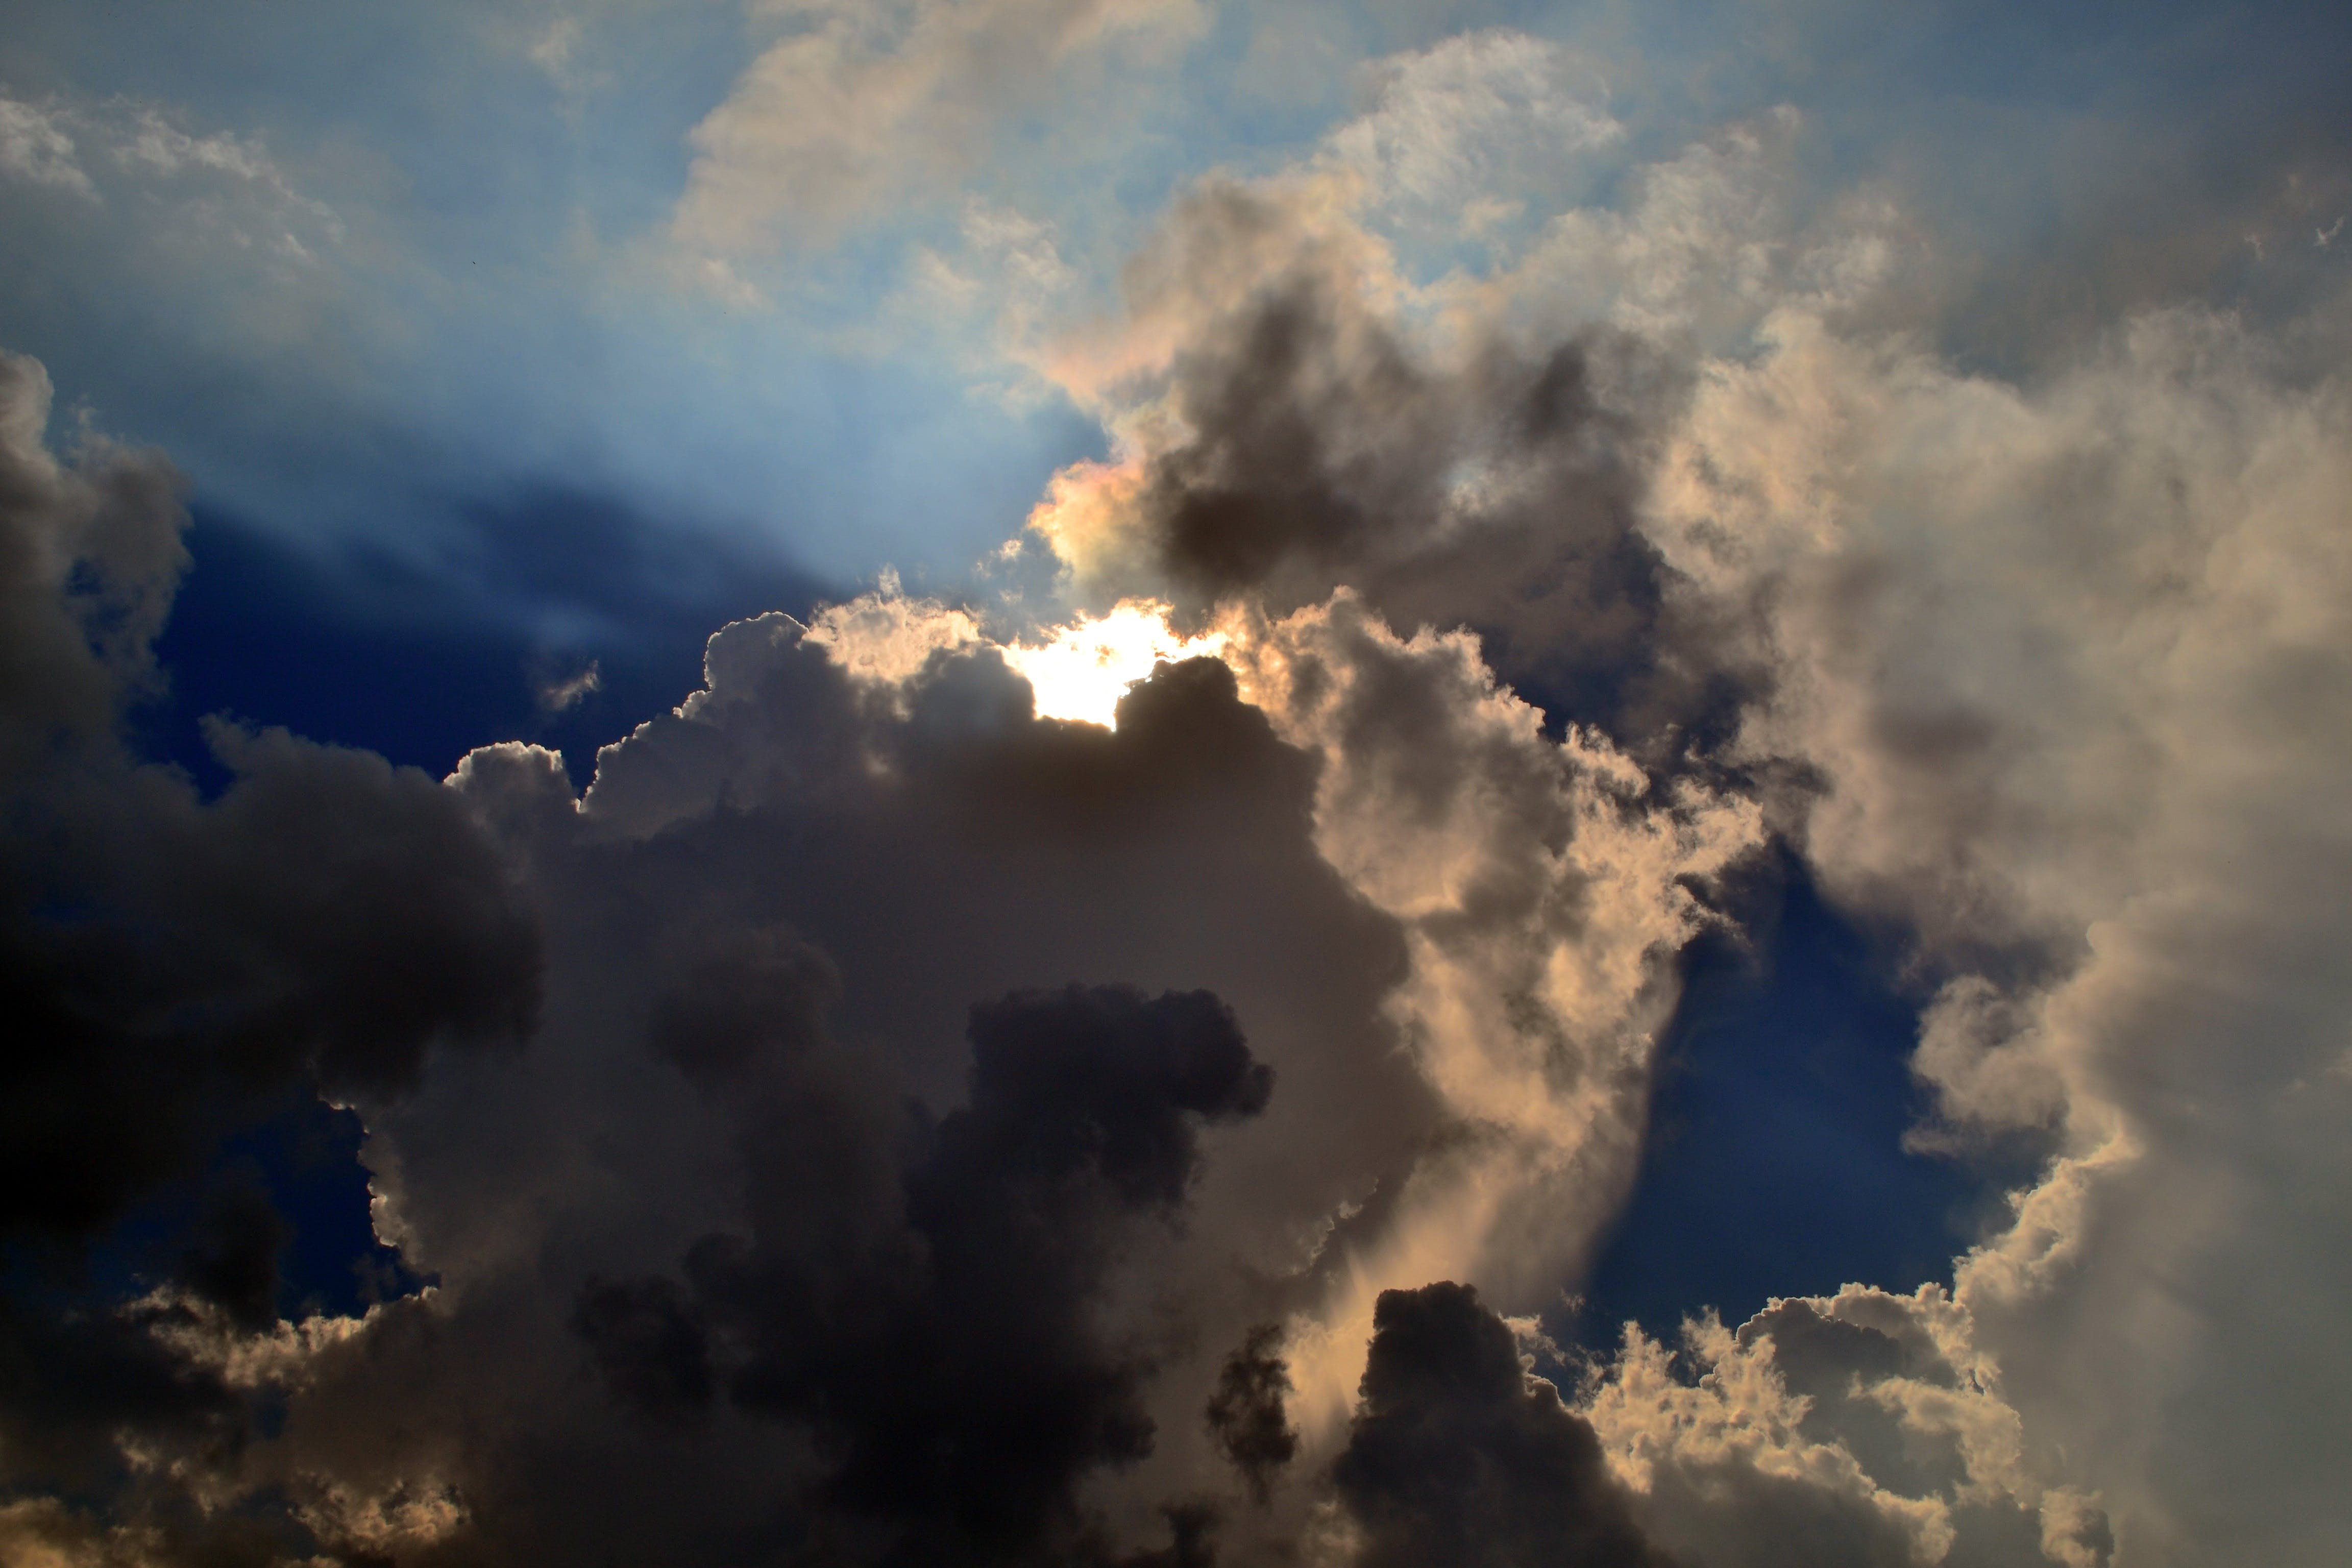 Gray Clouds Cover Sun Under Blue Sky